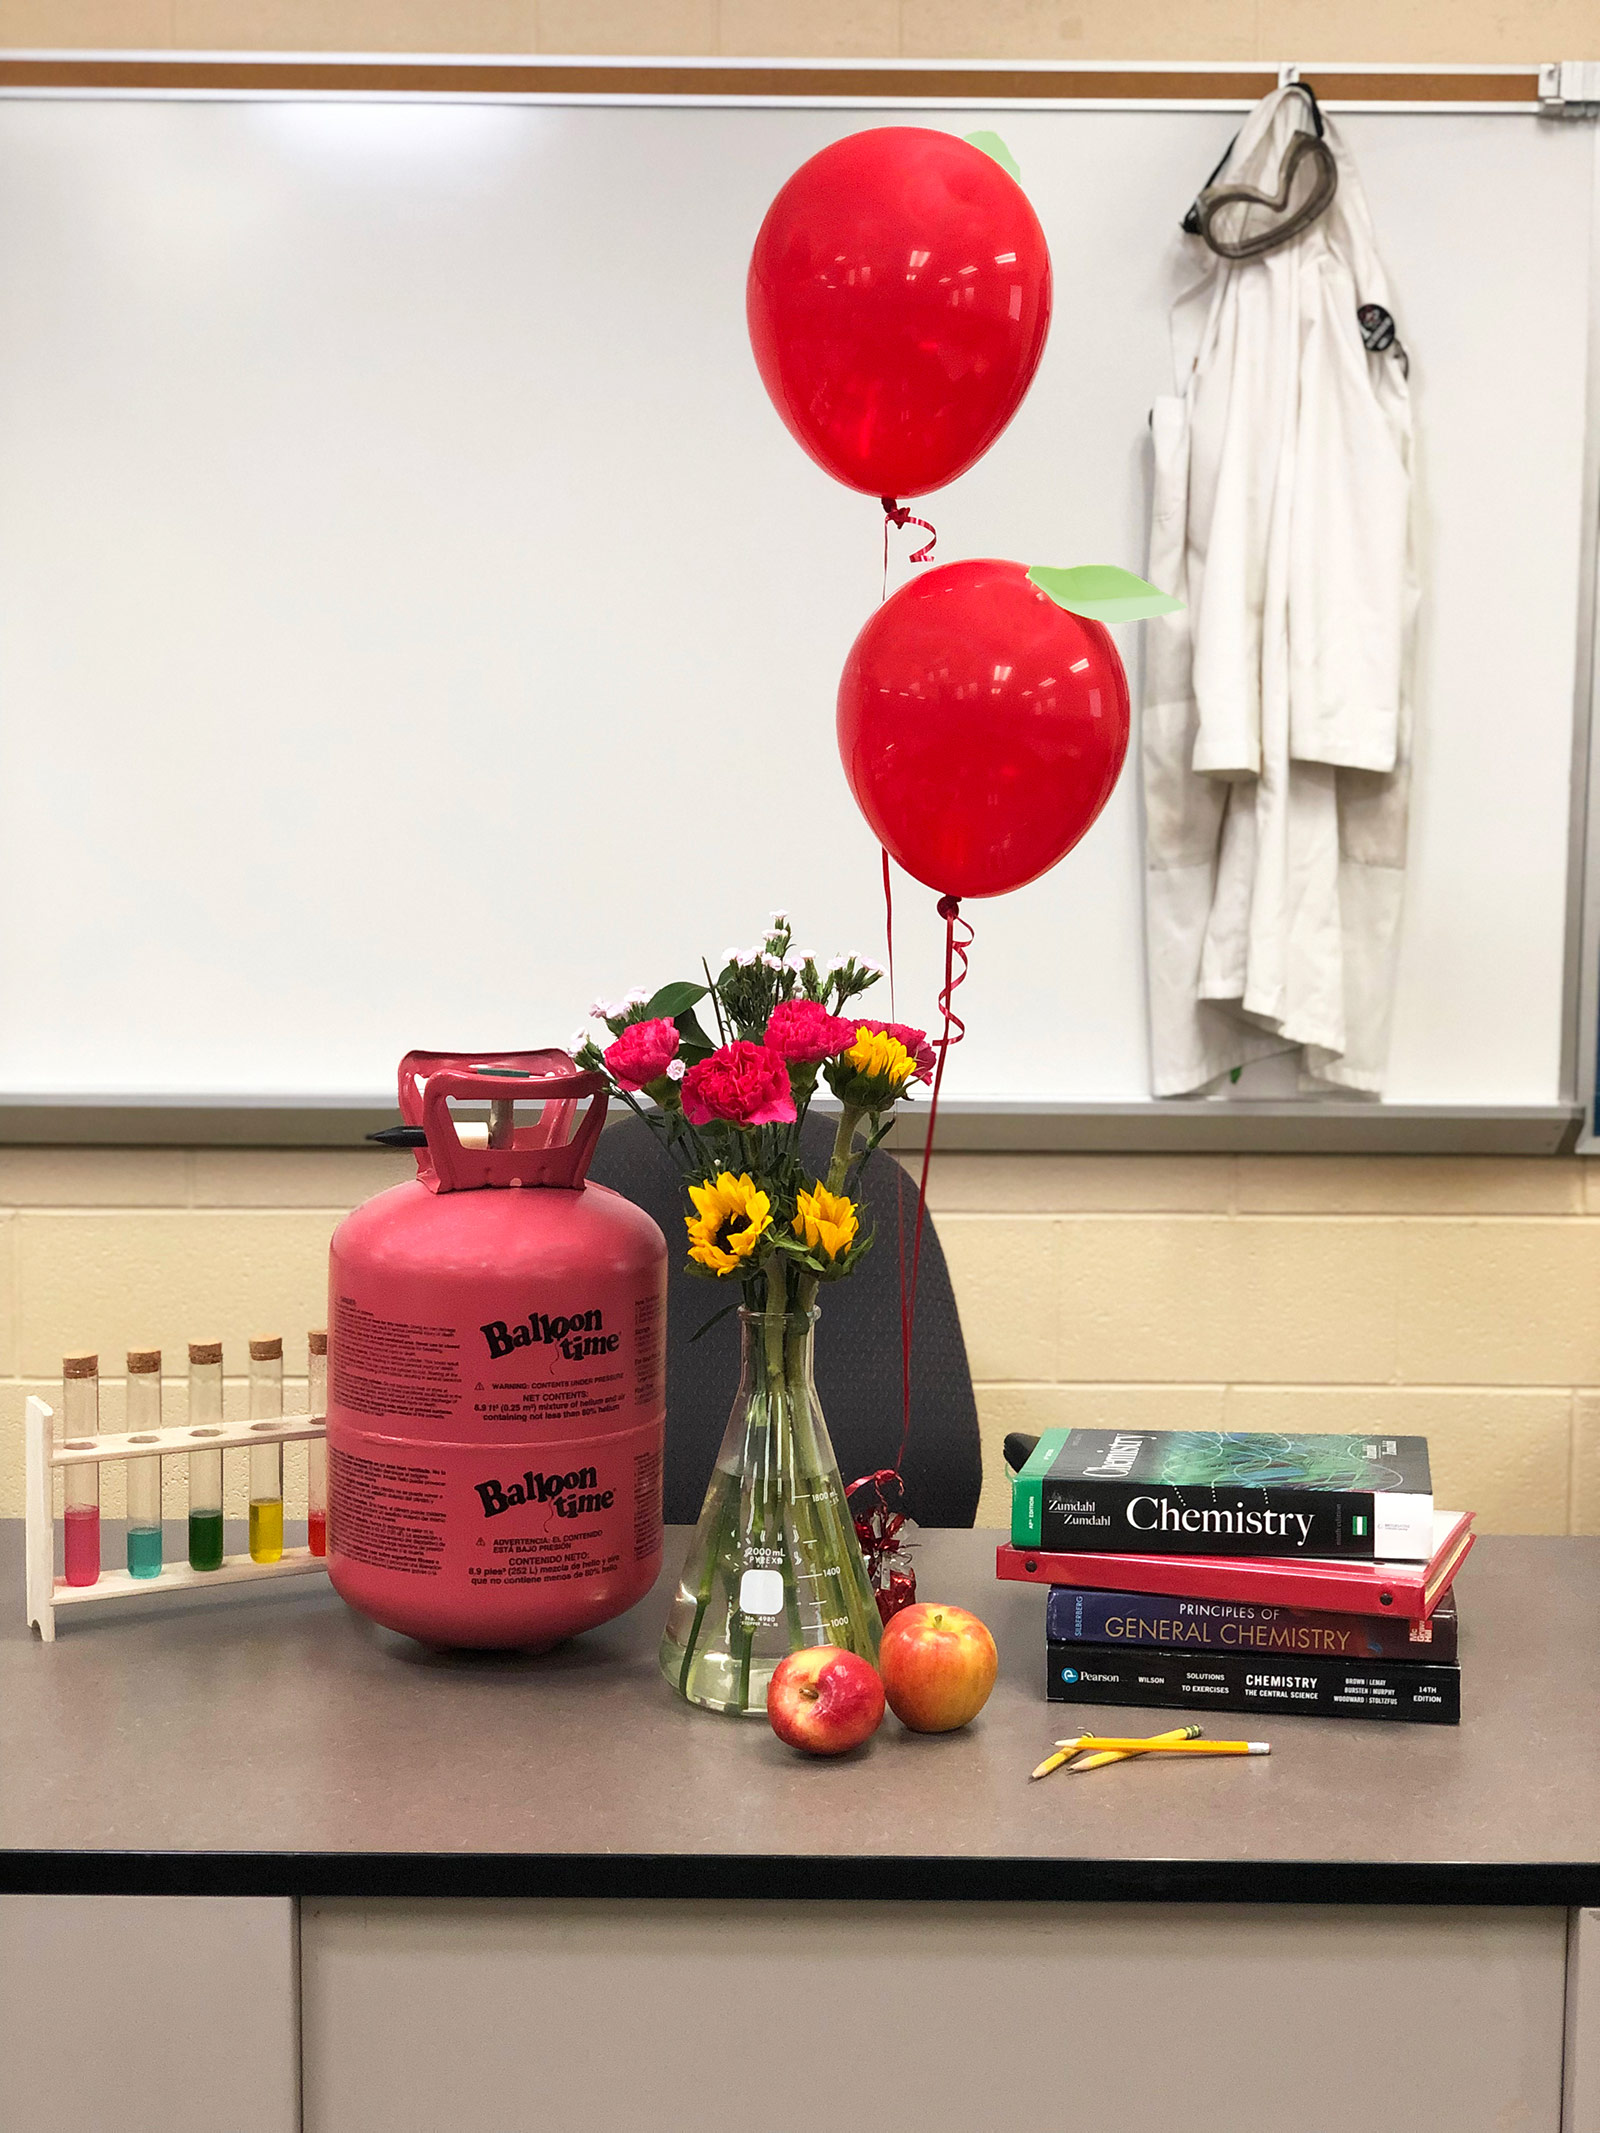 Balloons and helium tank in classroom